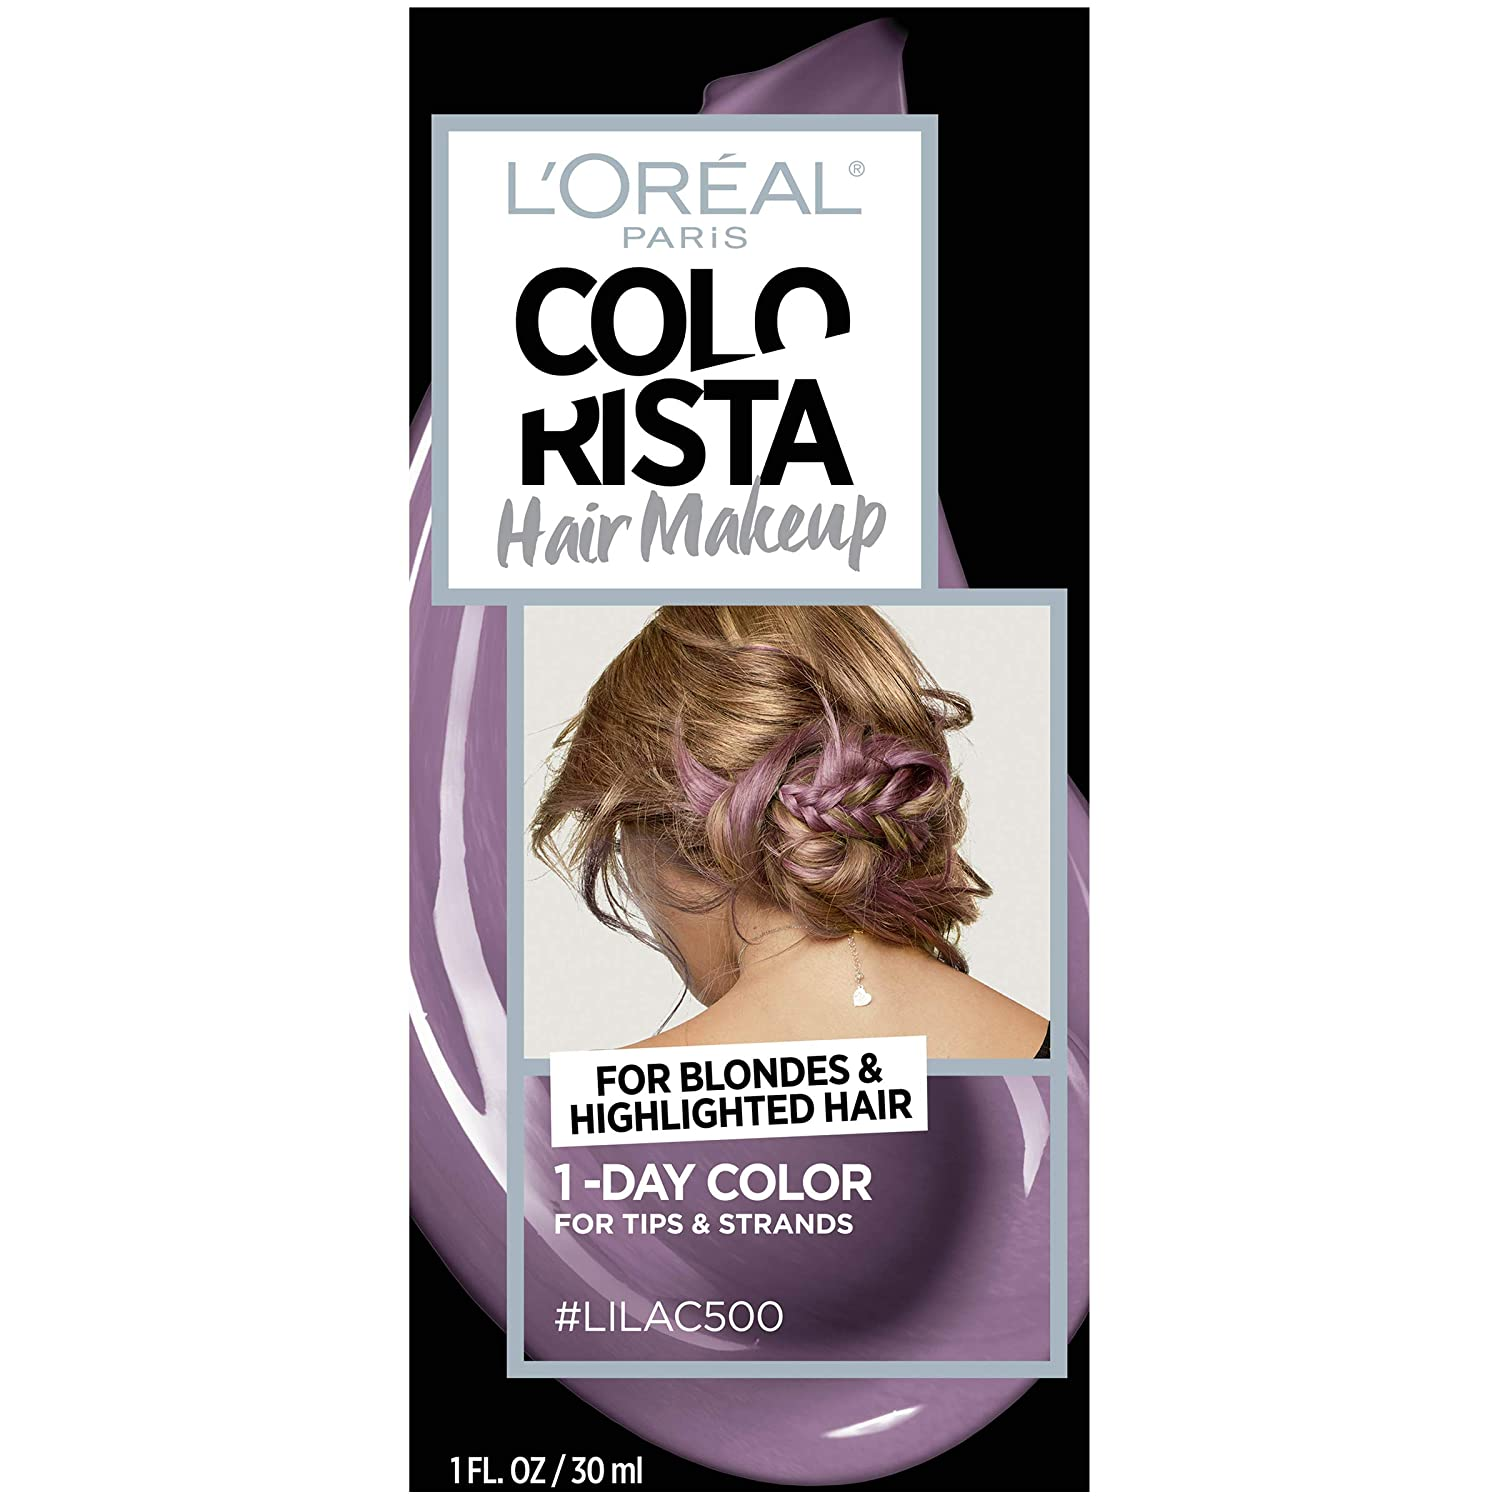 WHOLESALE LOREAL COLORISTA HAIR MAKEUP 1-DAY HAIR COLOR - LILAC 500 - 48 PIECE LOT